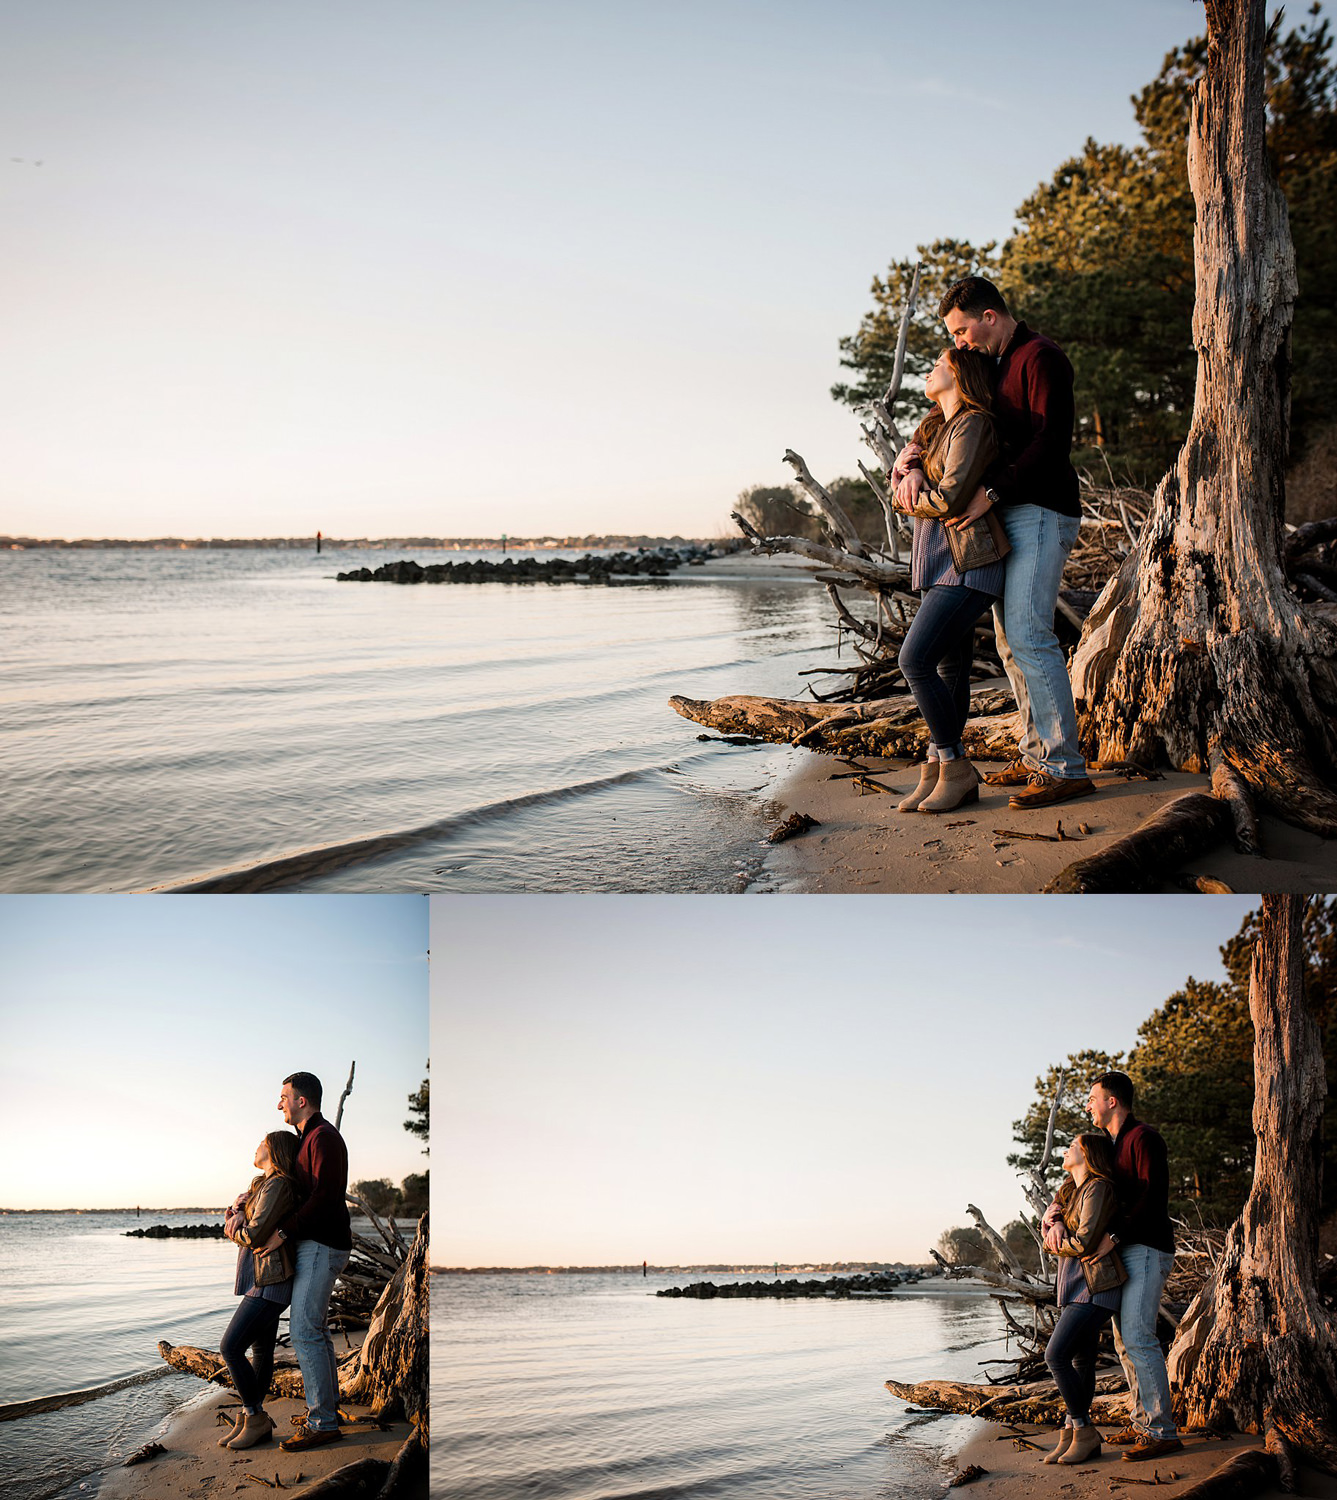 creative-couples-photography-virginia-beach-photographer-melissa-bliss-photography.jpg